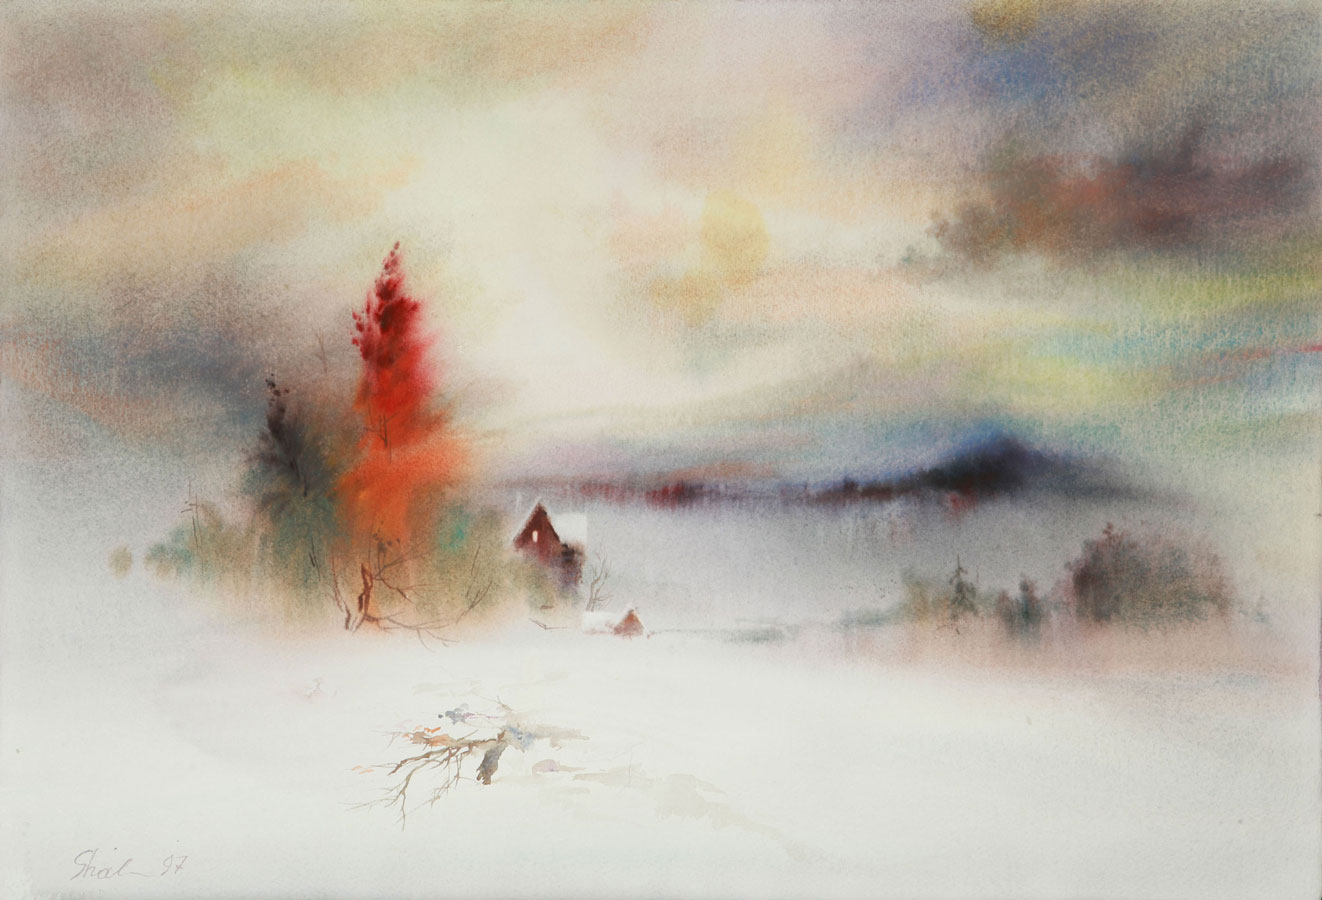 watercolor paintings wet-on-wet winter landscape fine art aquarelle artist Shalum Shalumov Шалум Шалуиов архитектор художник архитектурный дизайнер